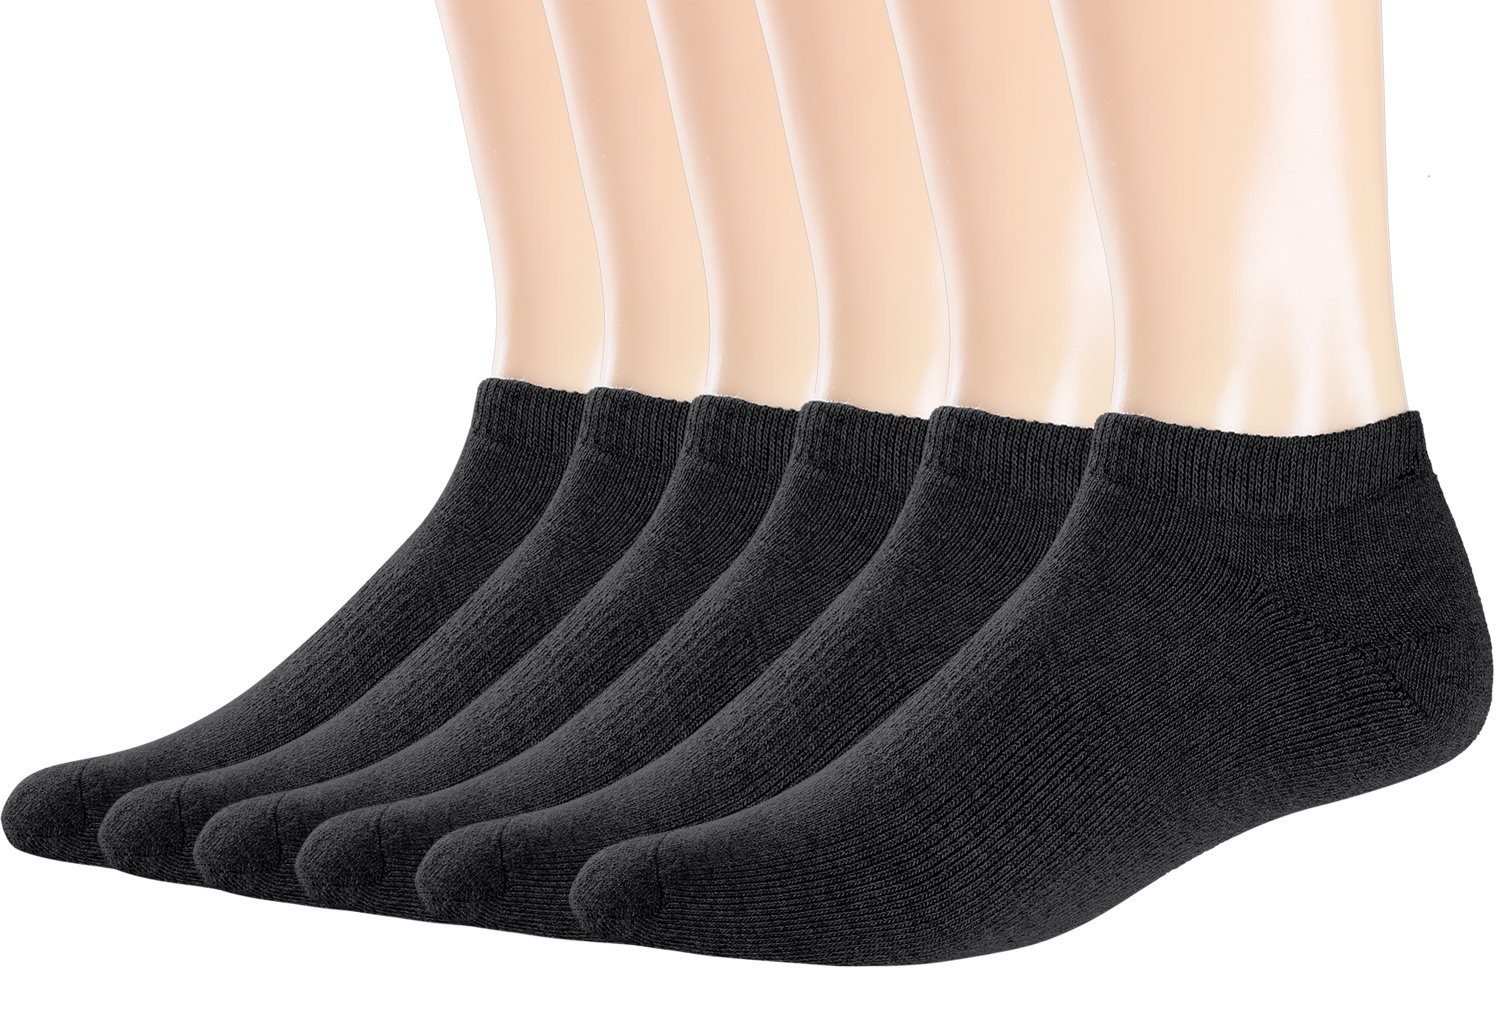 Areke Men's Performance Comfort Cotton Cushioned No show Socks, Knit Athletic Casual Low Cut Soxs